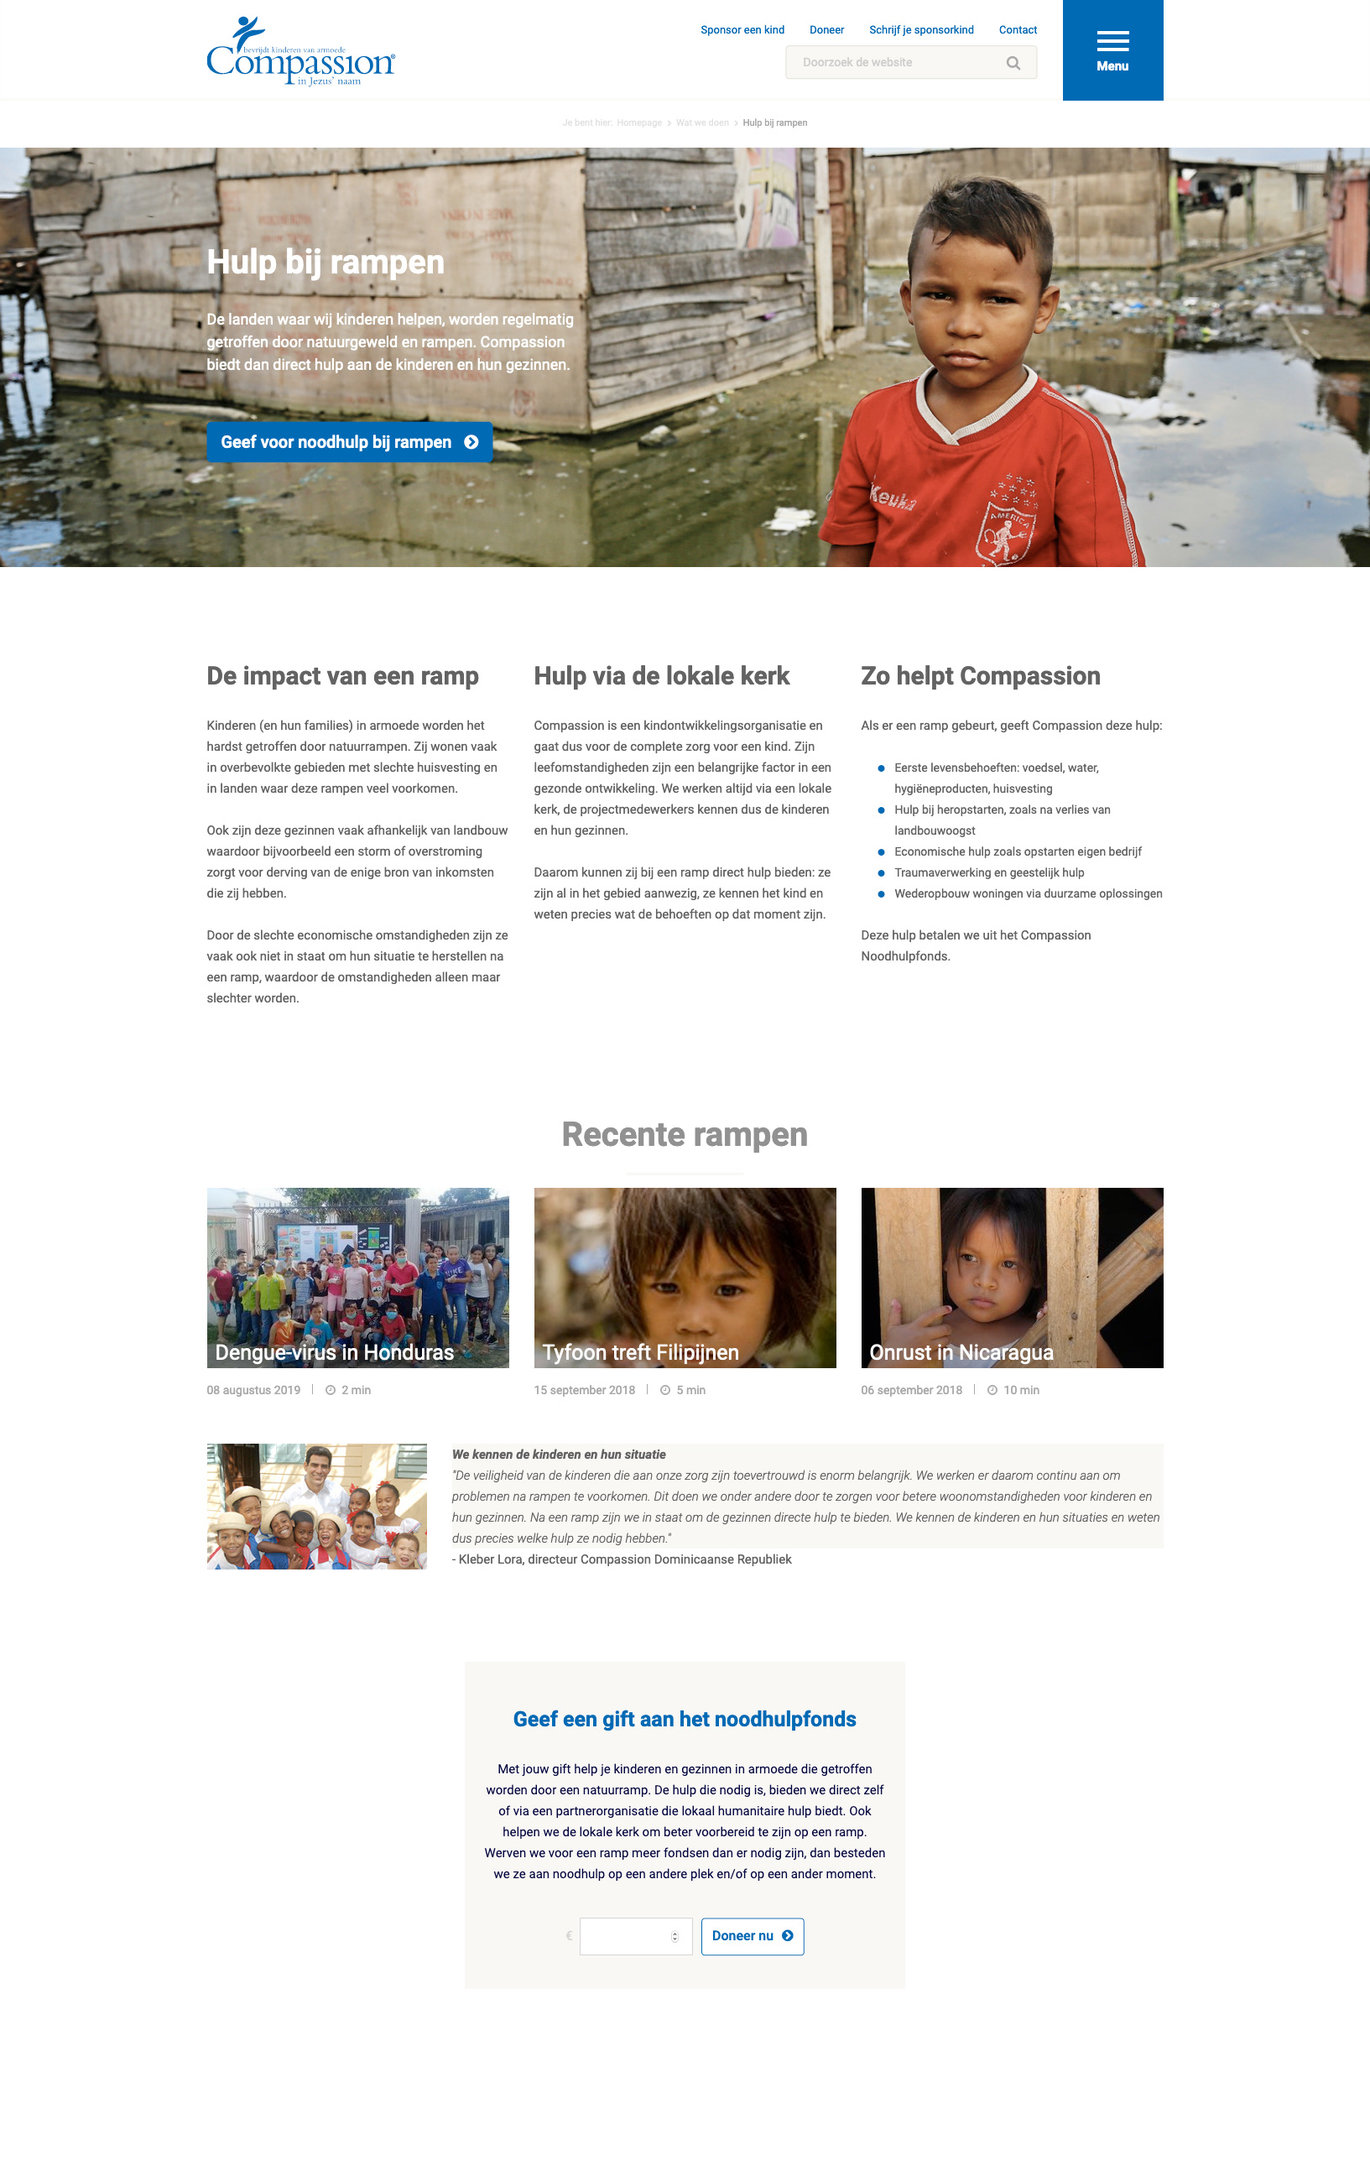 Sfeerafbeelding website Compassion